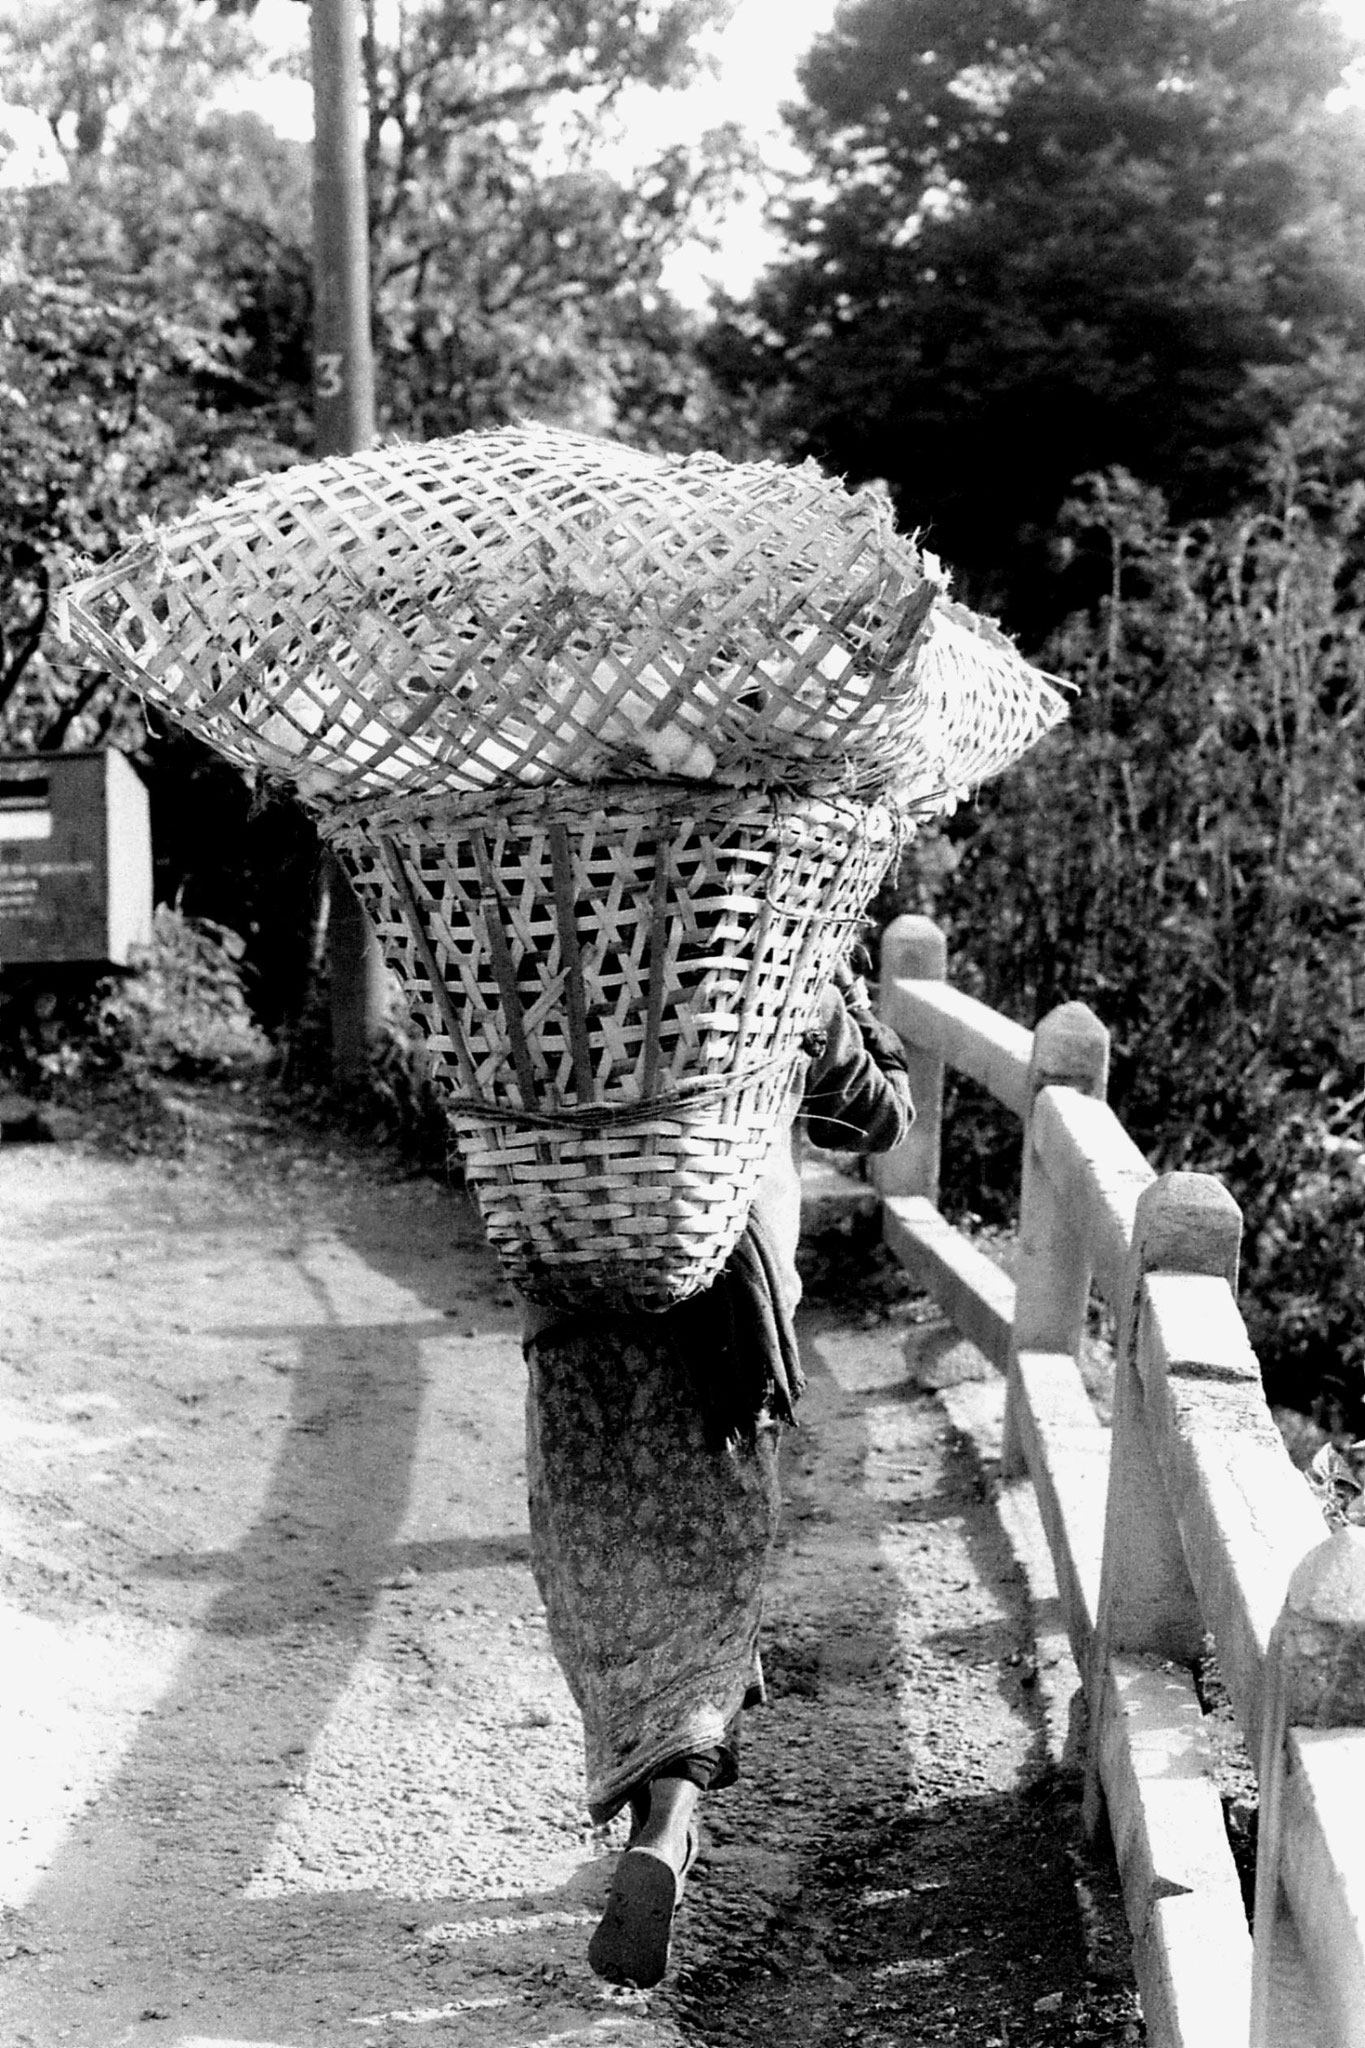 1/5/1990: 3: Darjeeling woman with chicken in basket